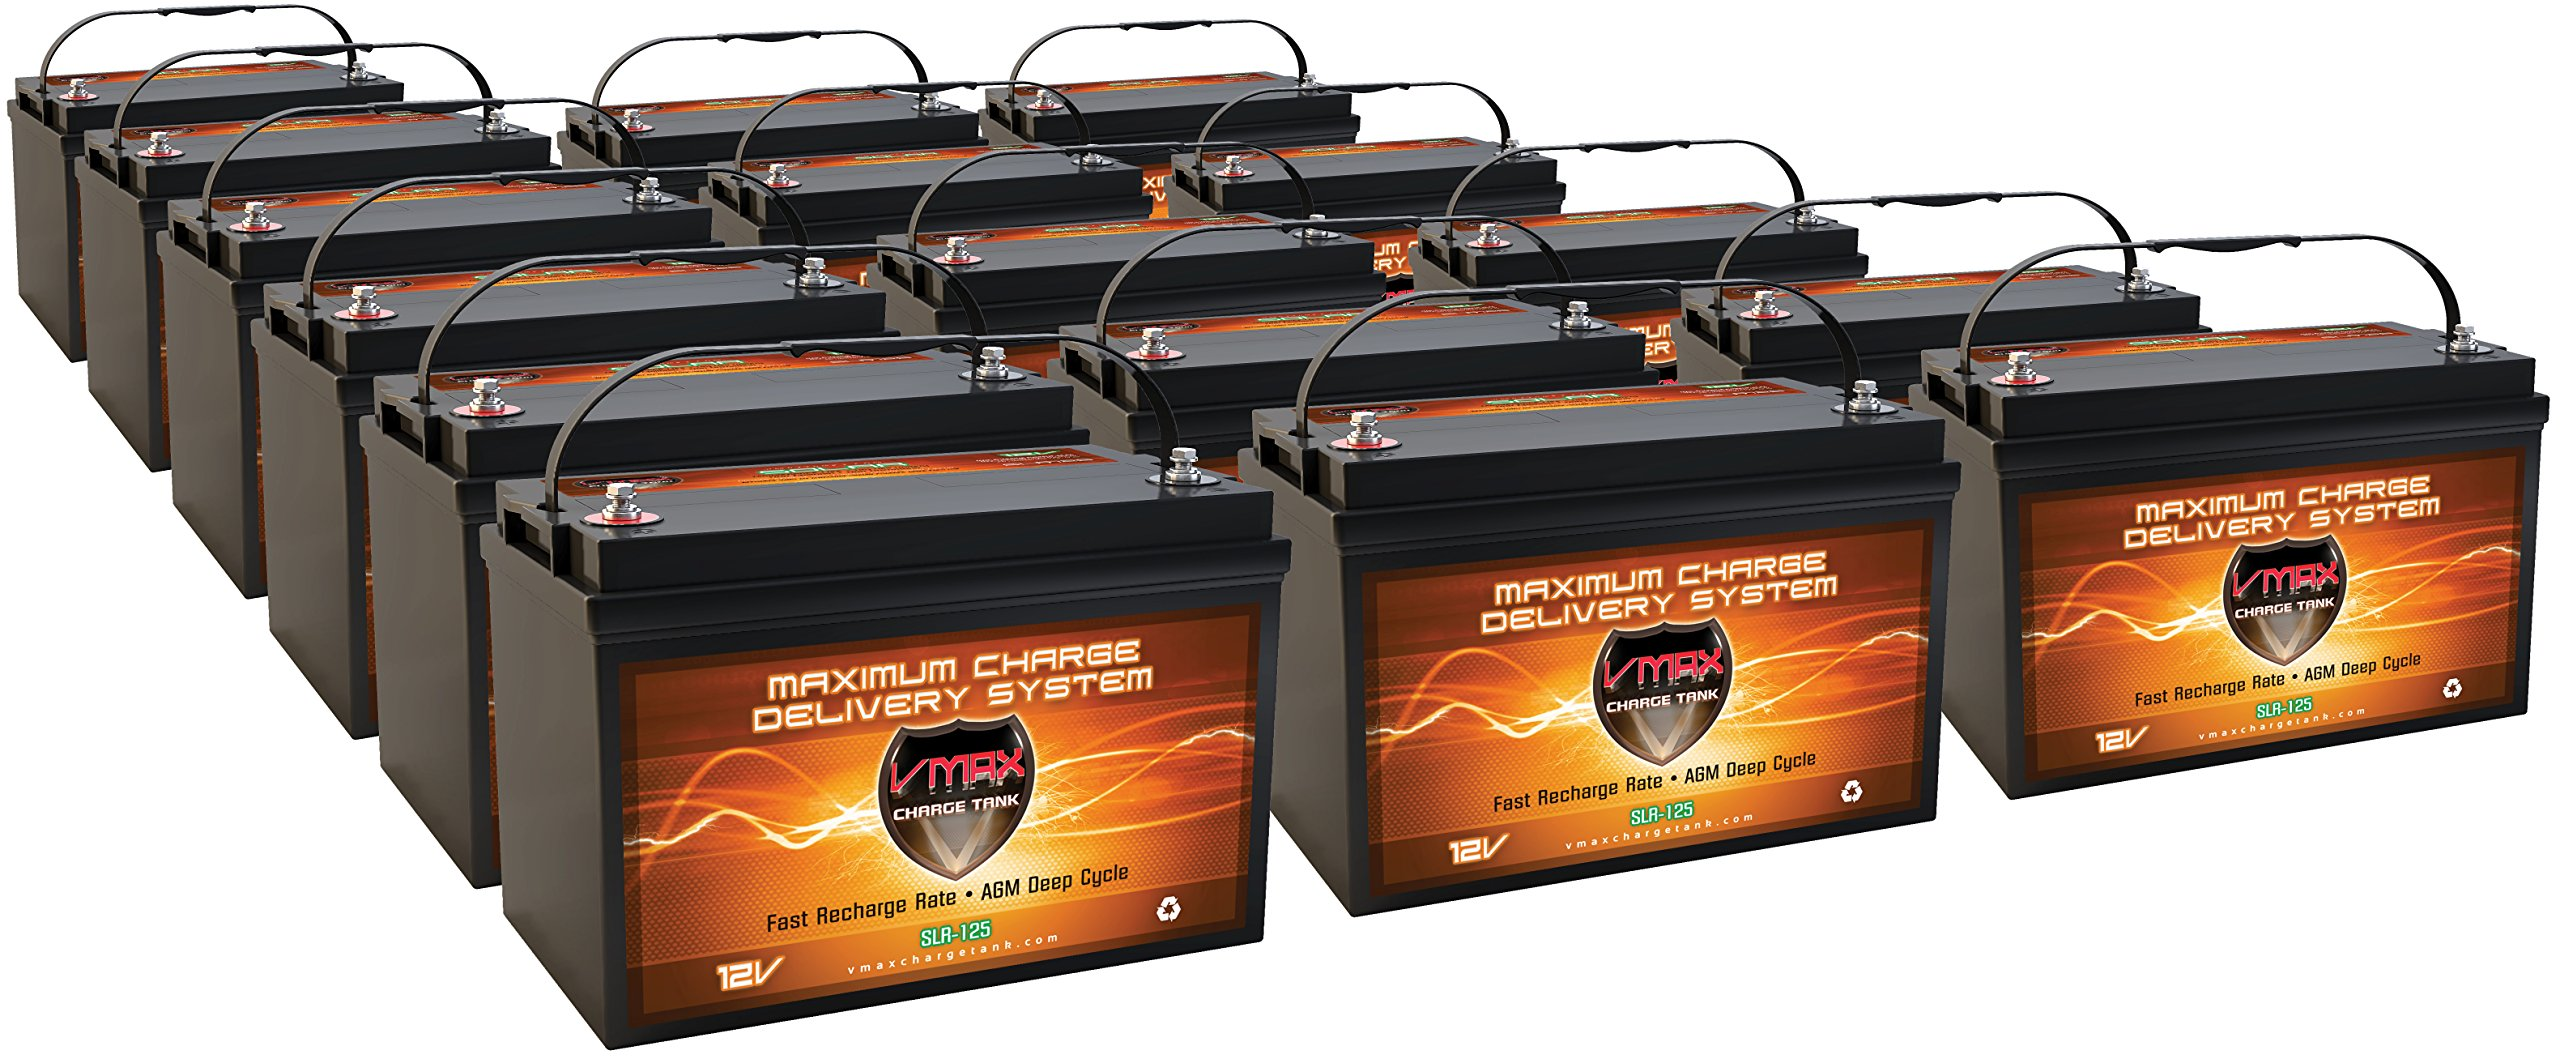 Vmaxtanks VMAXSLR125-16 AGM deep cycle 12V 2000AH battery for Use with PV Solar Panel wind turbine gas or electric power backup generator or smart charger for off grid sump pump lift winch pallet jack and any other heavy duty application by VMAX Solar